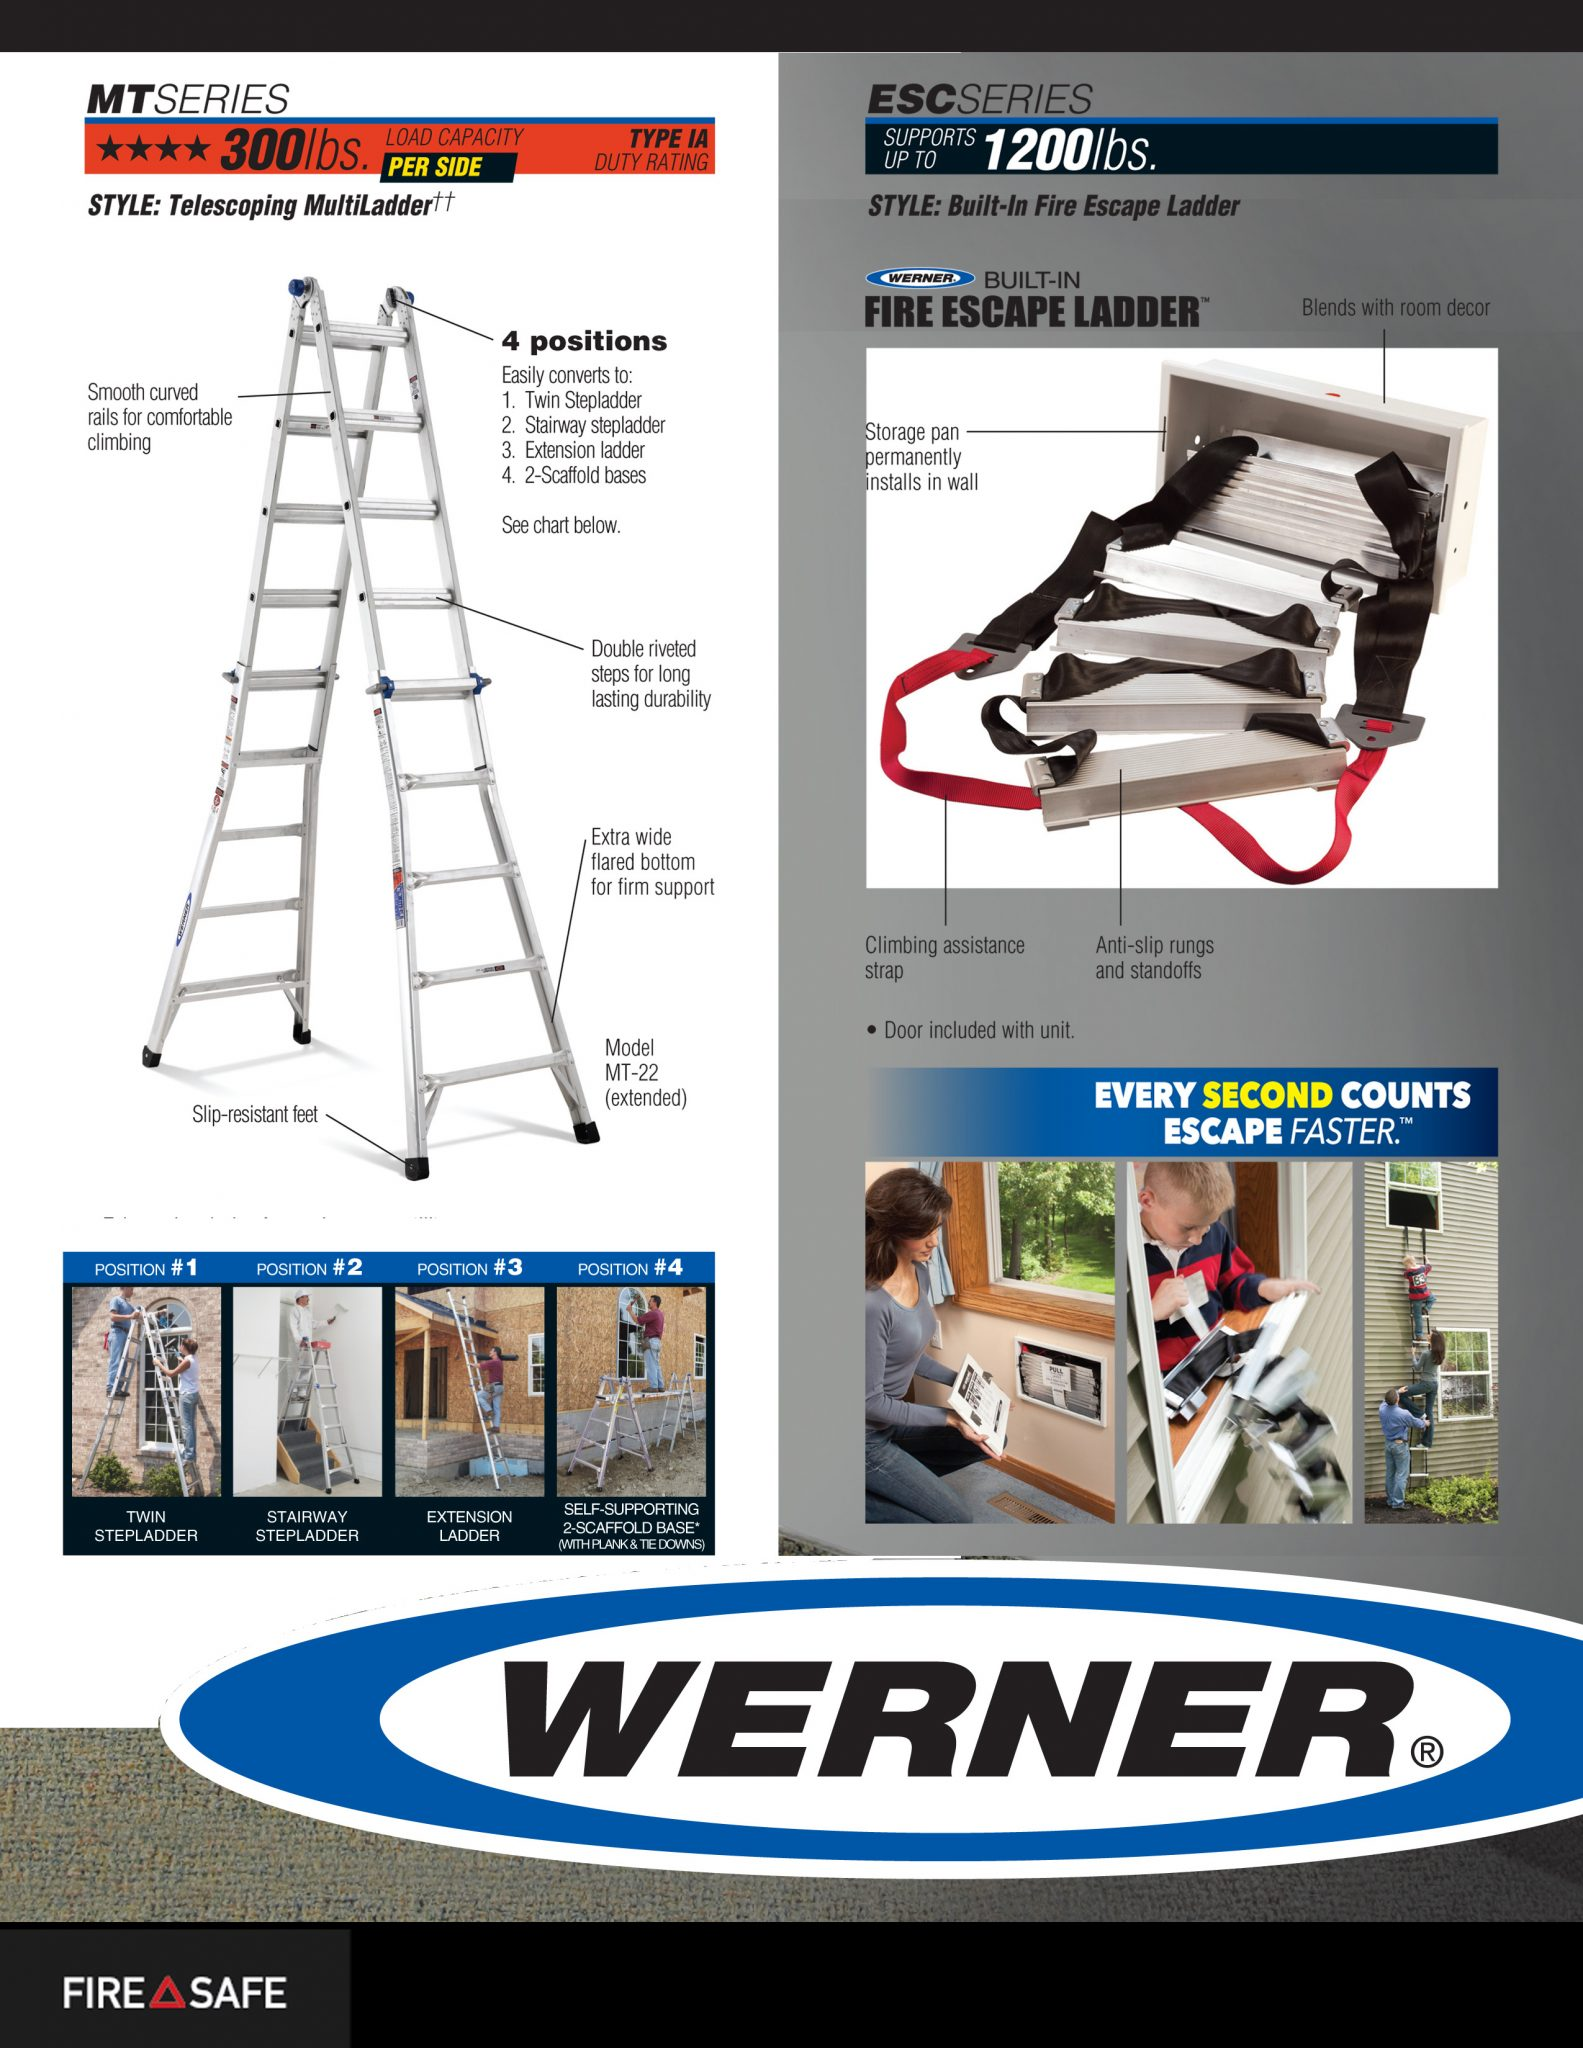 P40 2013 Product Guide Werner